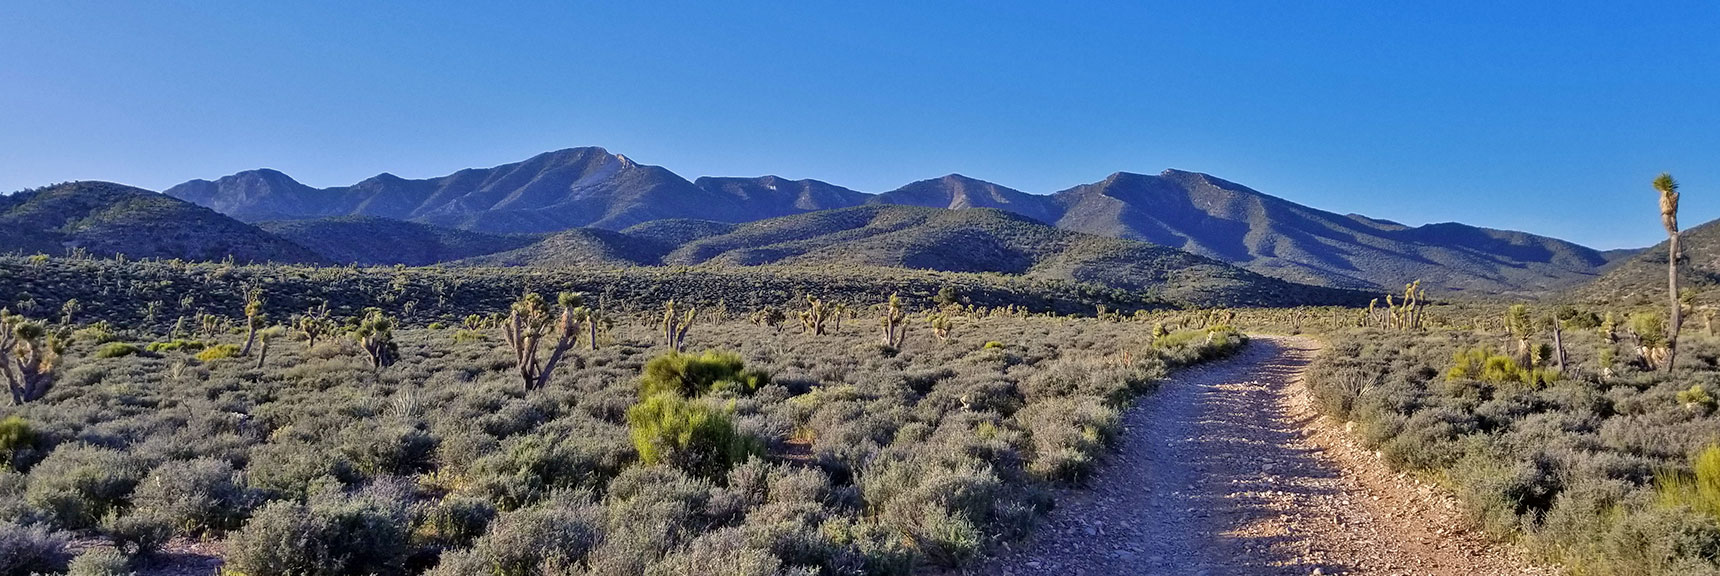 4wd Road Splits Off from Harris Springs Road On the Way to El Padre Mountain, La Madre Mountains Wilderness, Nevada